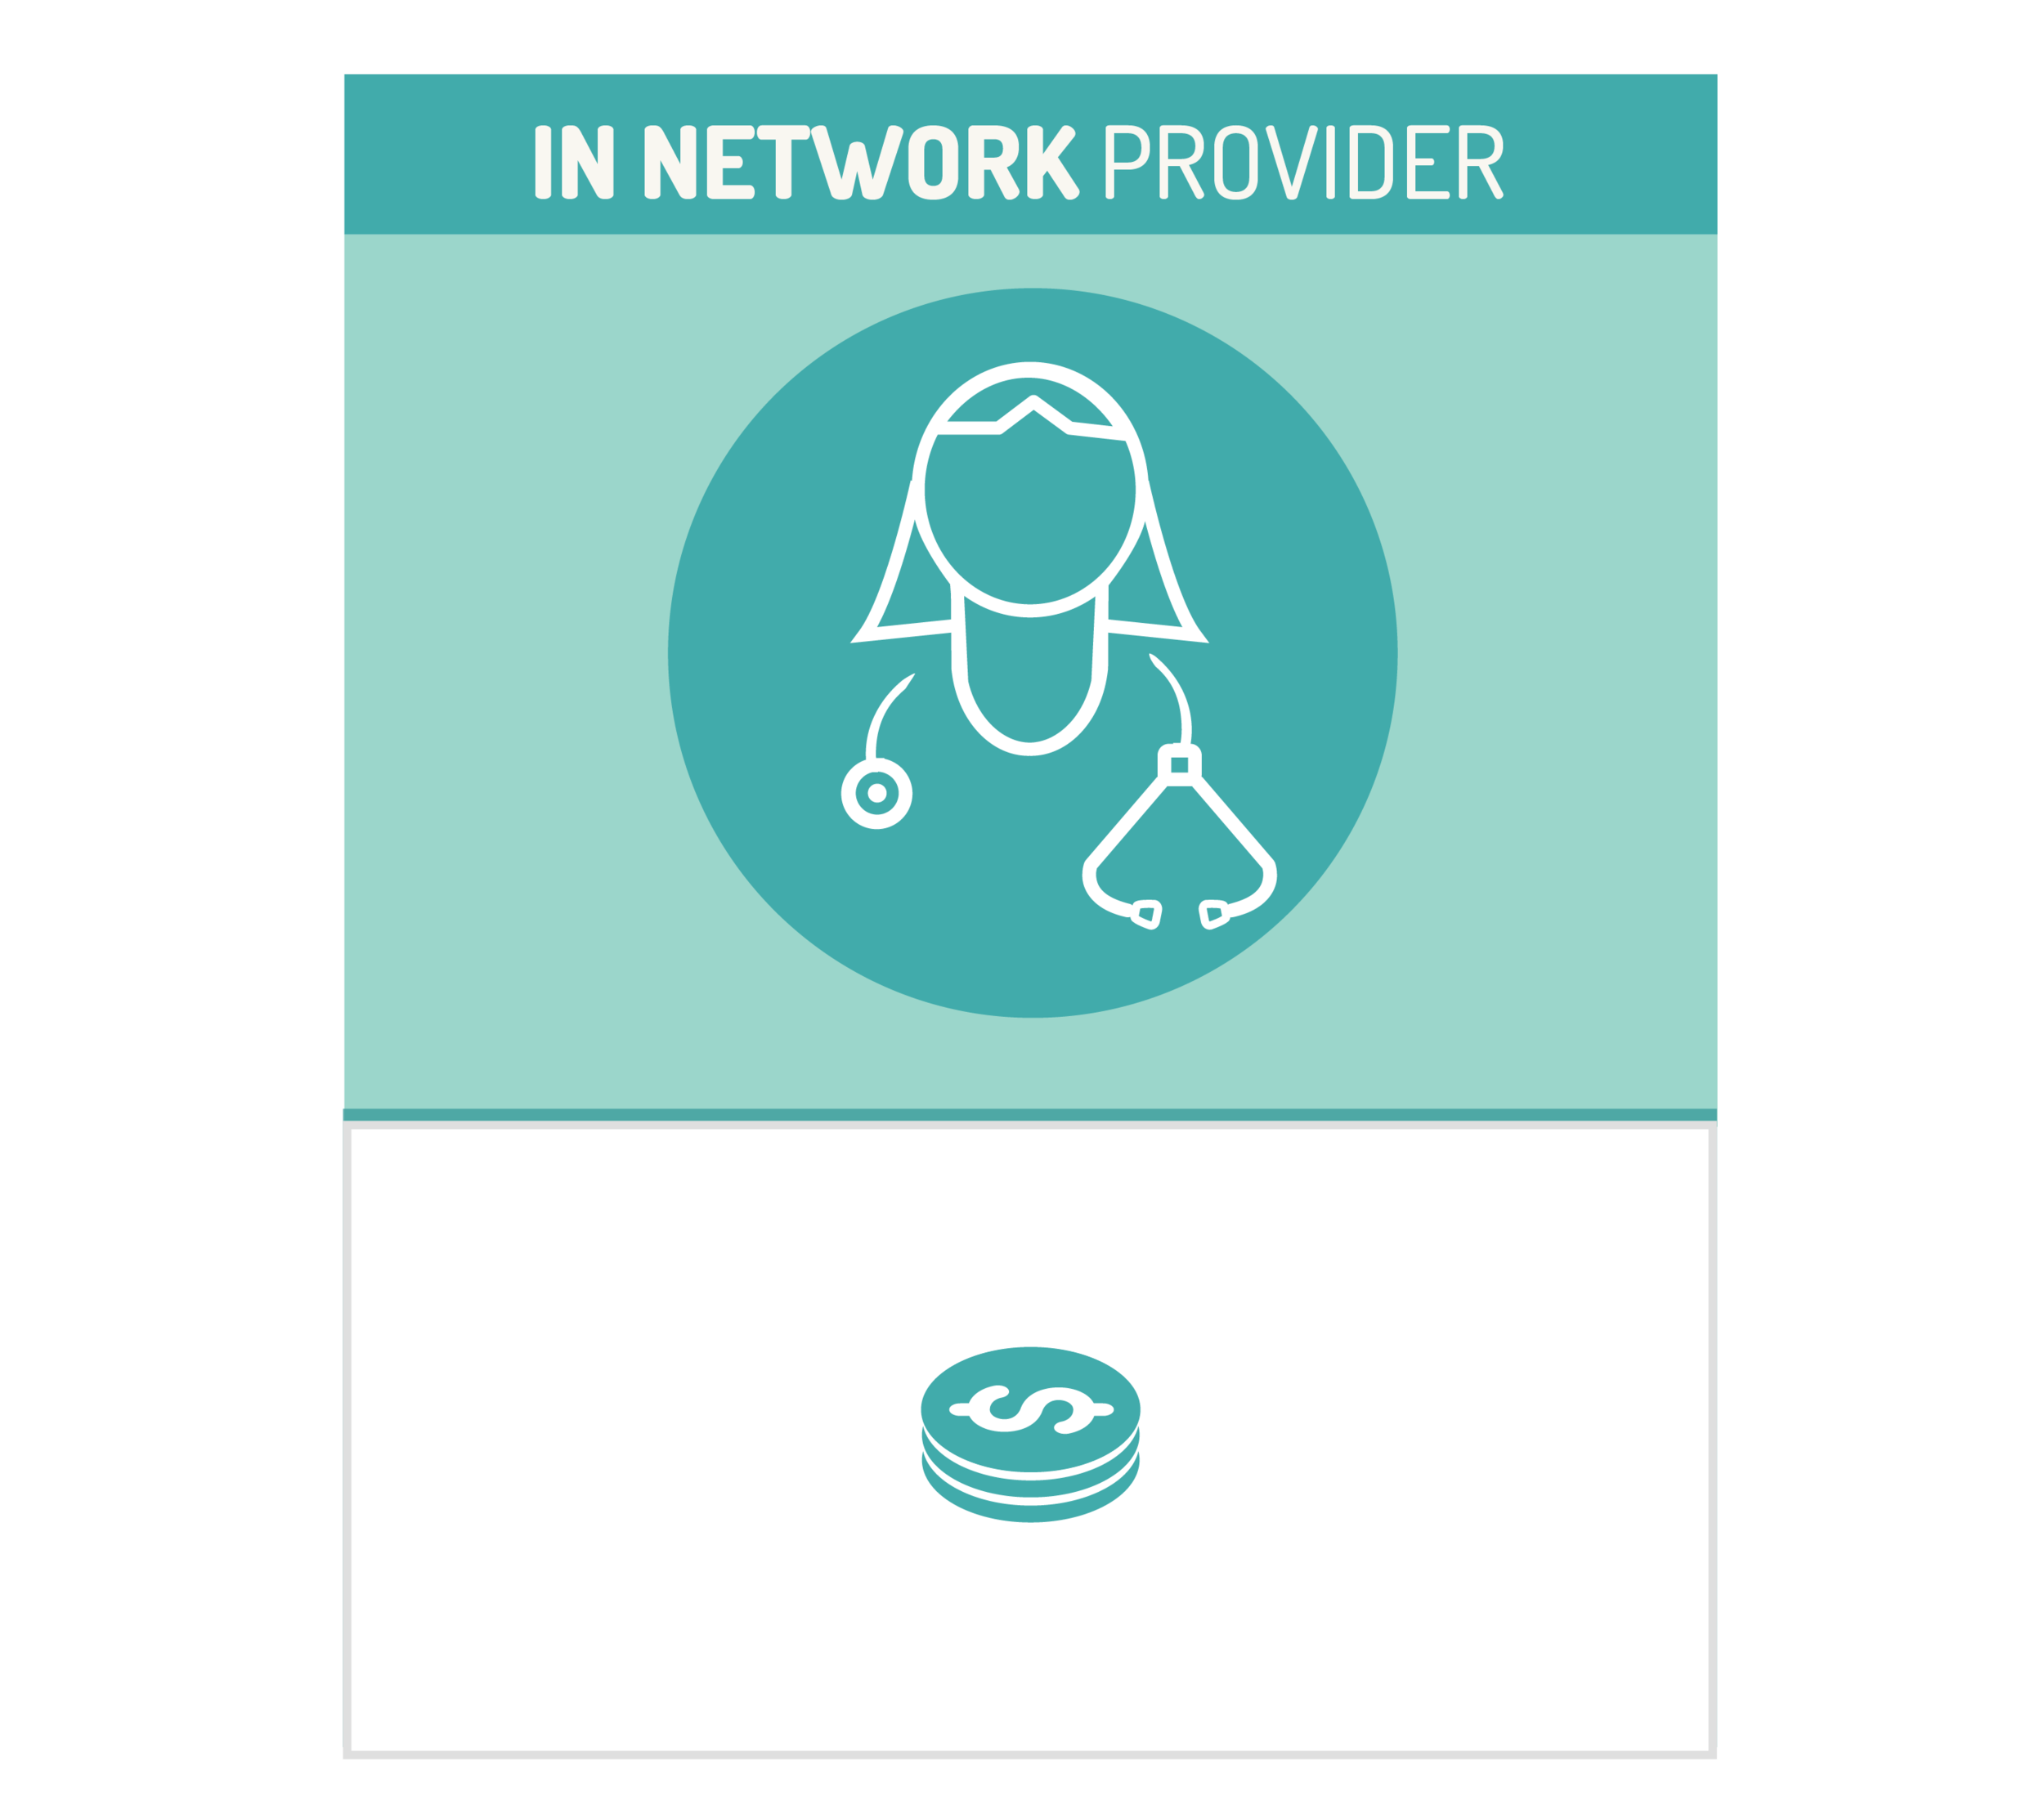 graphic of an in-network provider